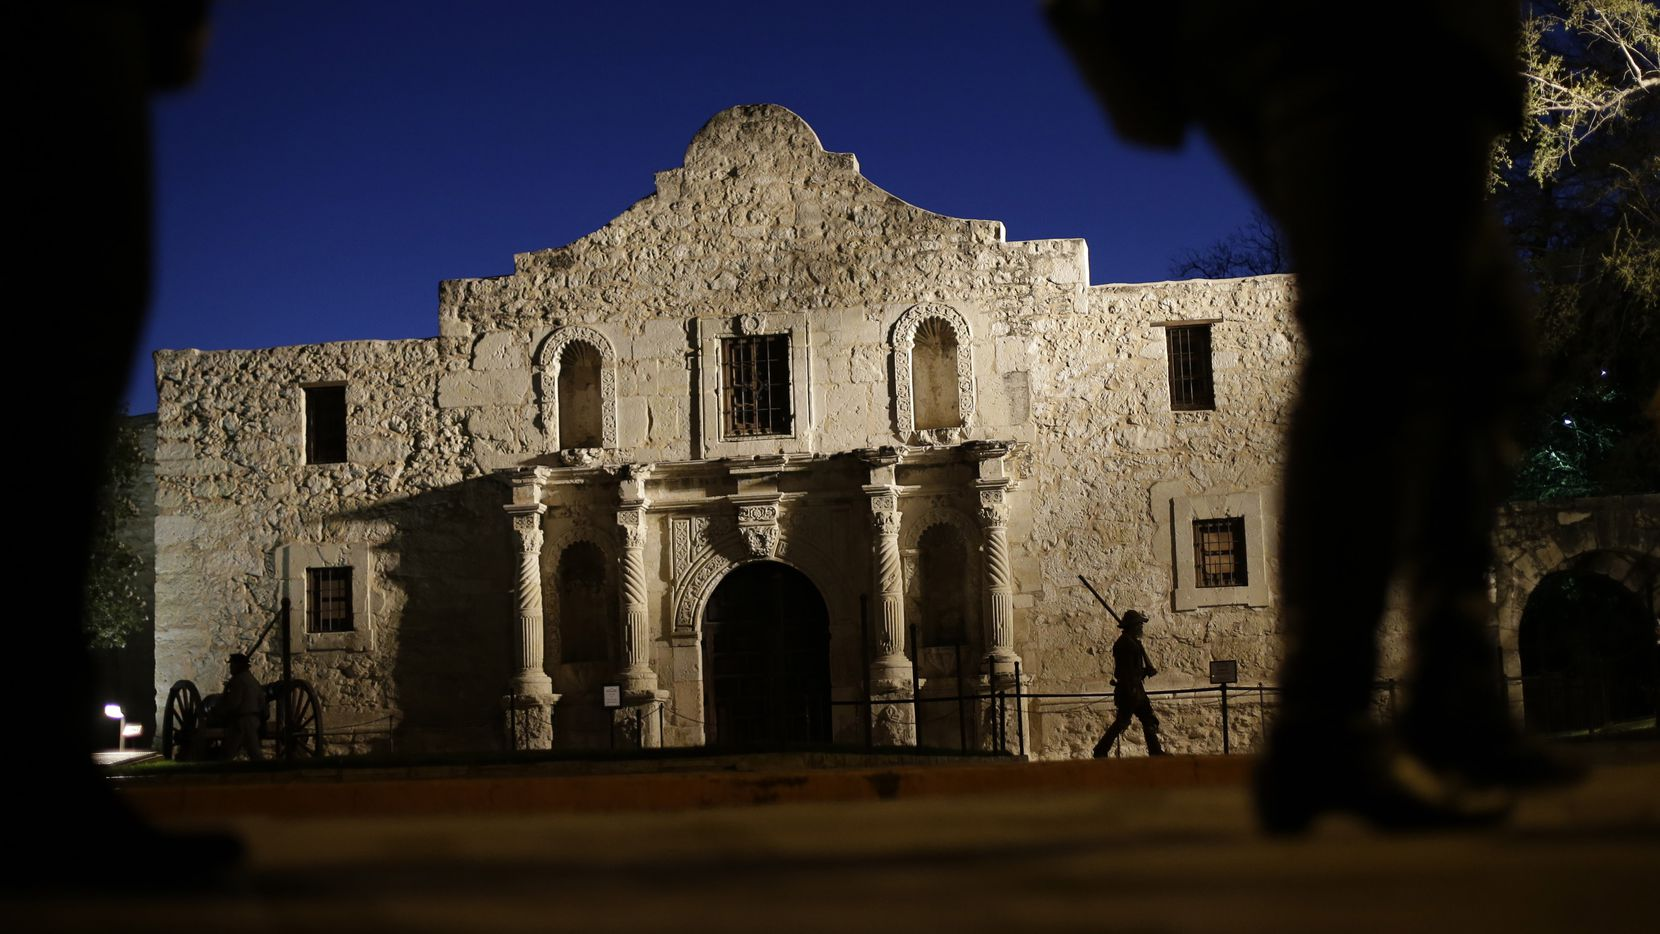 In this March 6, 2013, file photo, Dan Phillips, a member of the San Antonio Living History Association, patrols the Alamo during a pre-dawn memorial ceremony to remember the 1836 Battle of the Alamo and those who fell on both sides, in San Antonio.